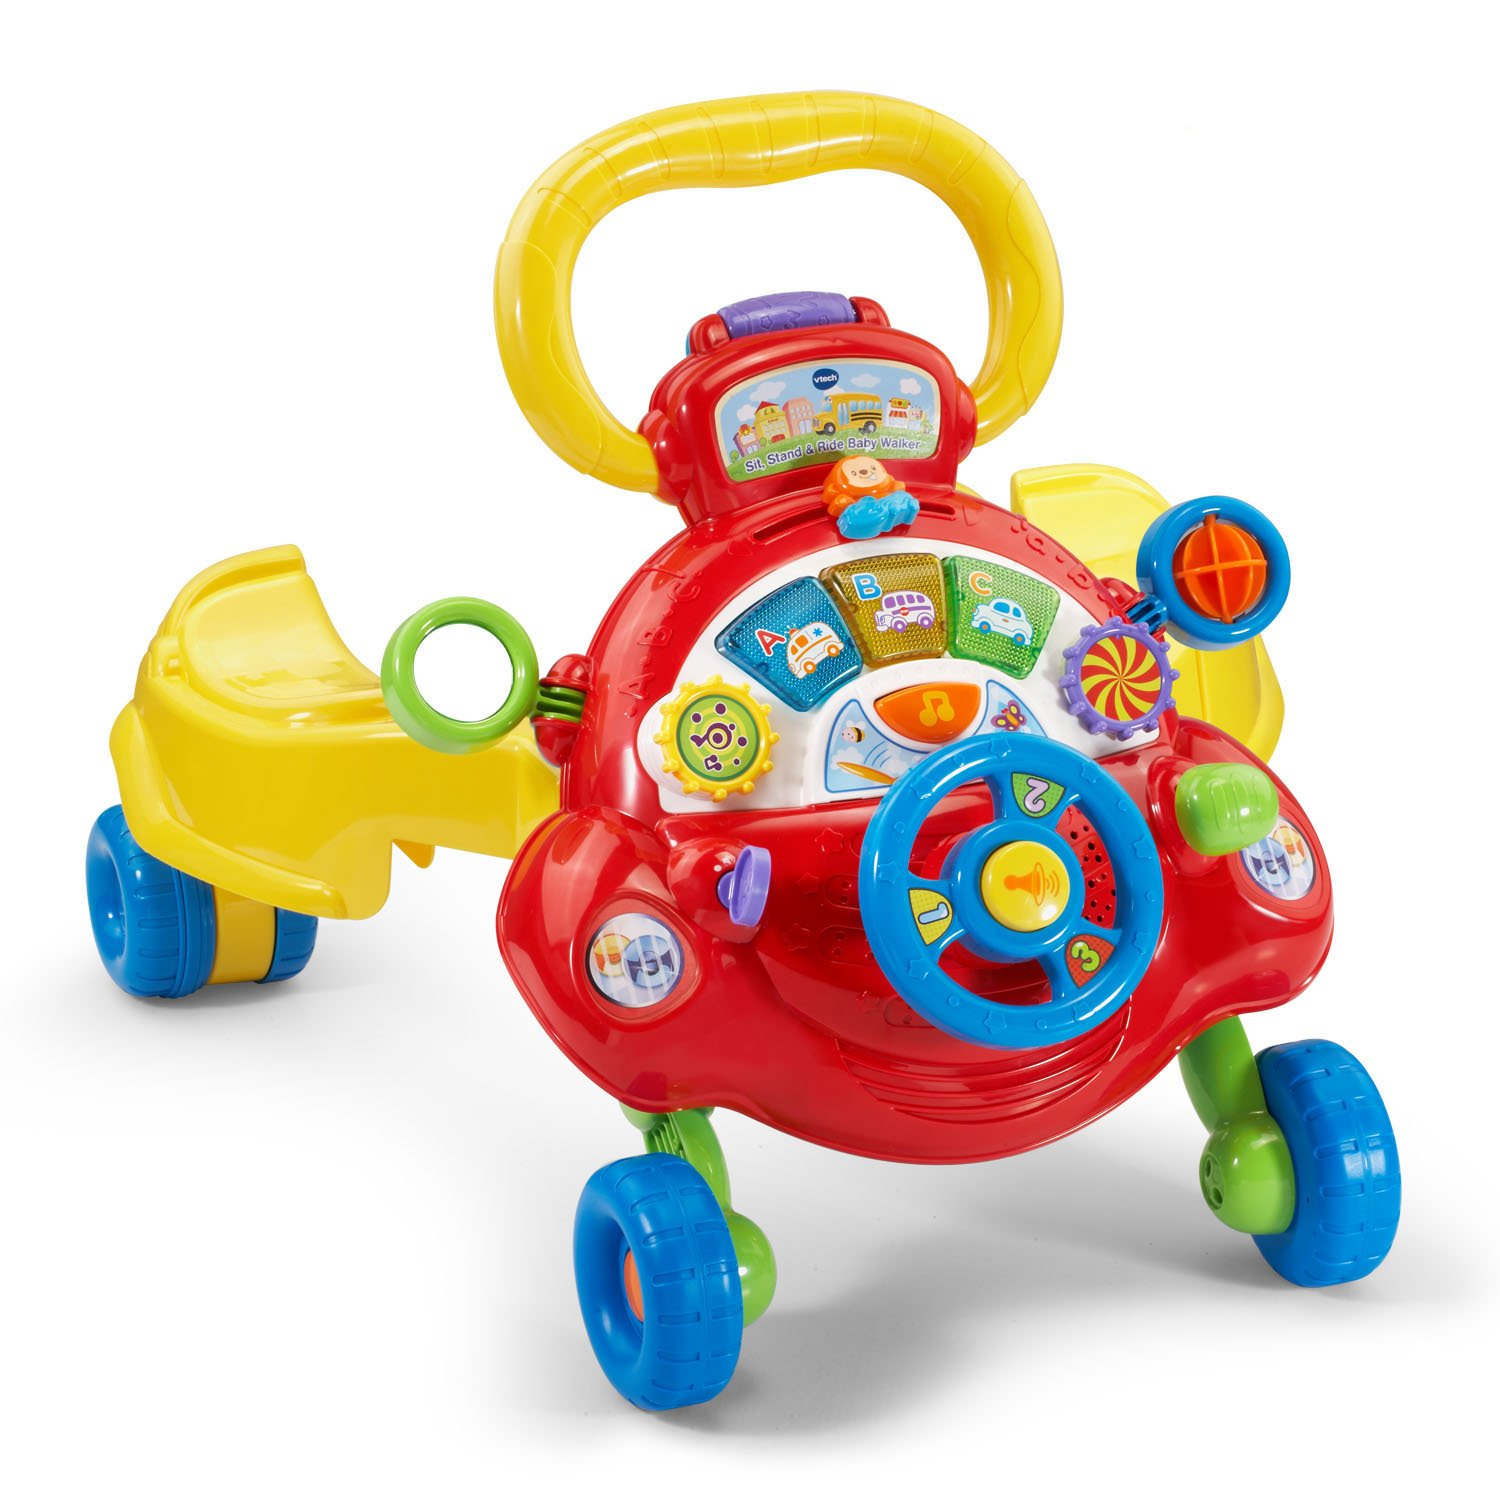 VTech Sit, Stand and Ride Baby Walker (Frustration Free Packaging) (Amazon Exclusive) by VTech (Image #11)